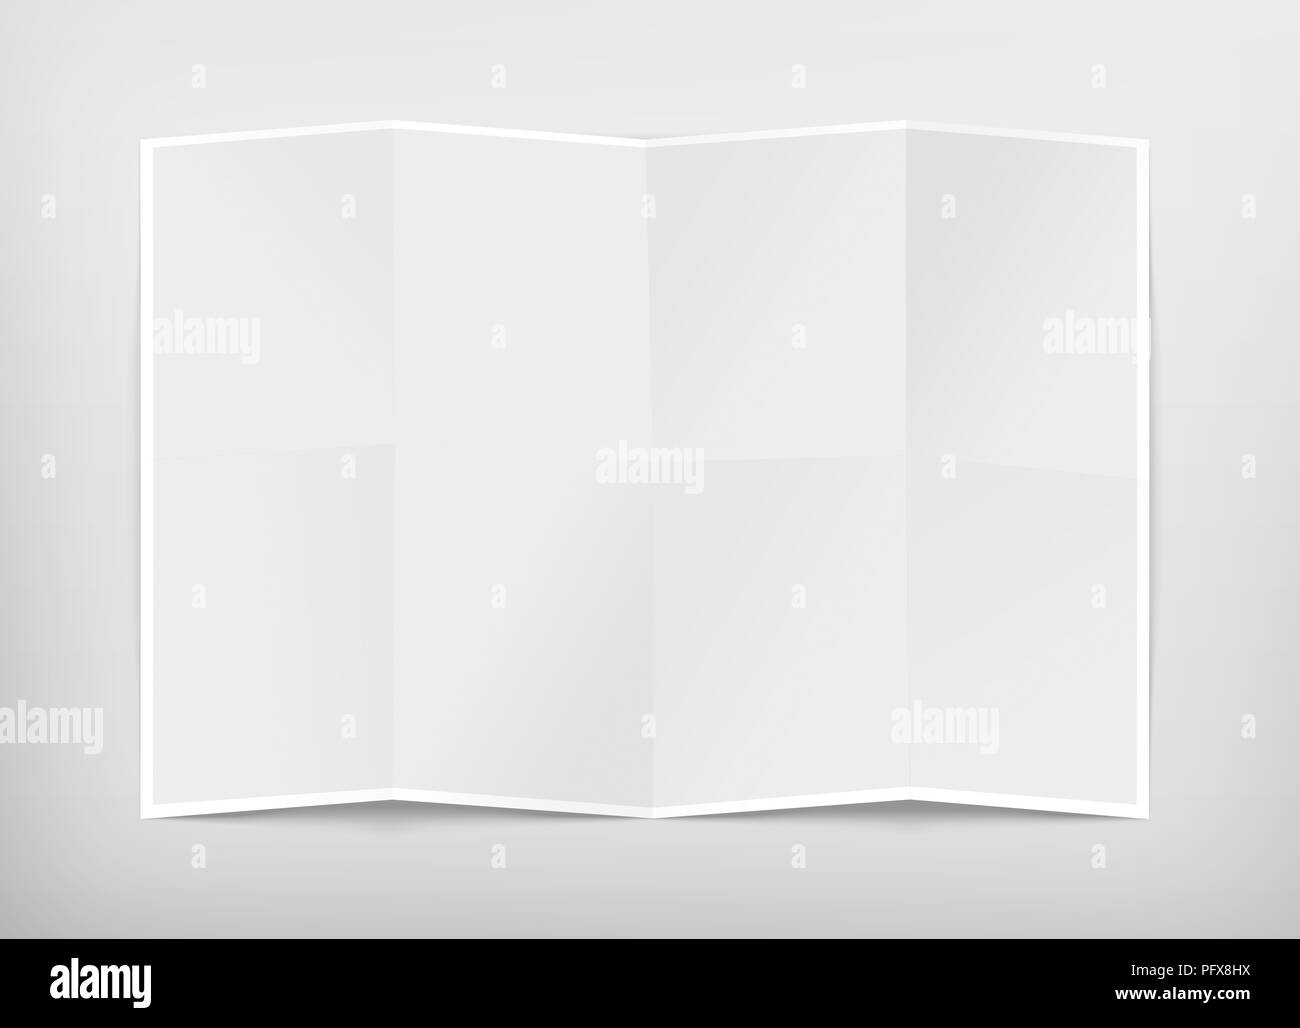 Blank chart design mockup, isolated, clipping path, 3d illustration. Folded map template mock up display. Clear draft plan paper sheet front view. Pattern diagram clear booklet. Clean map mockup. - Stock Image